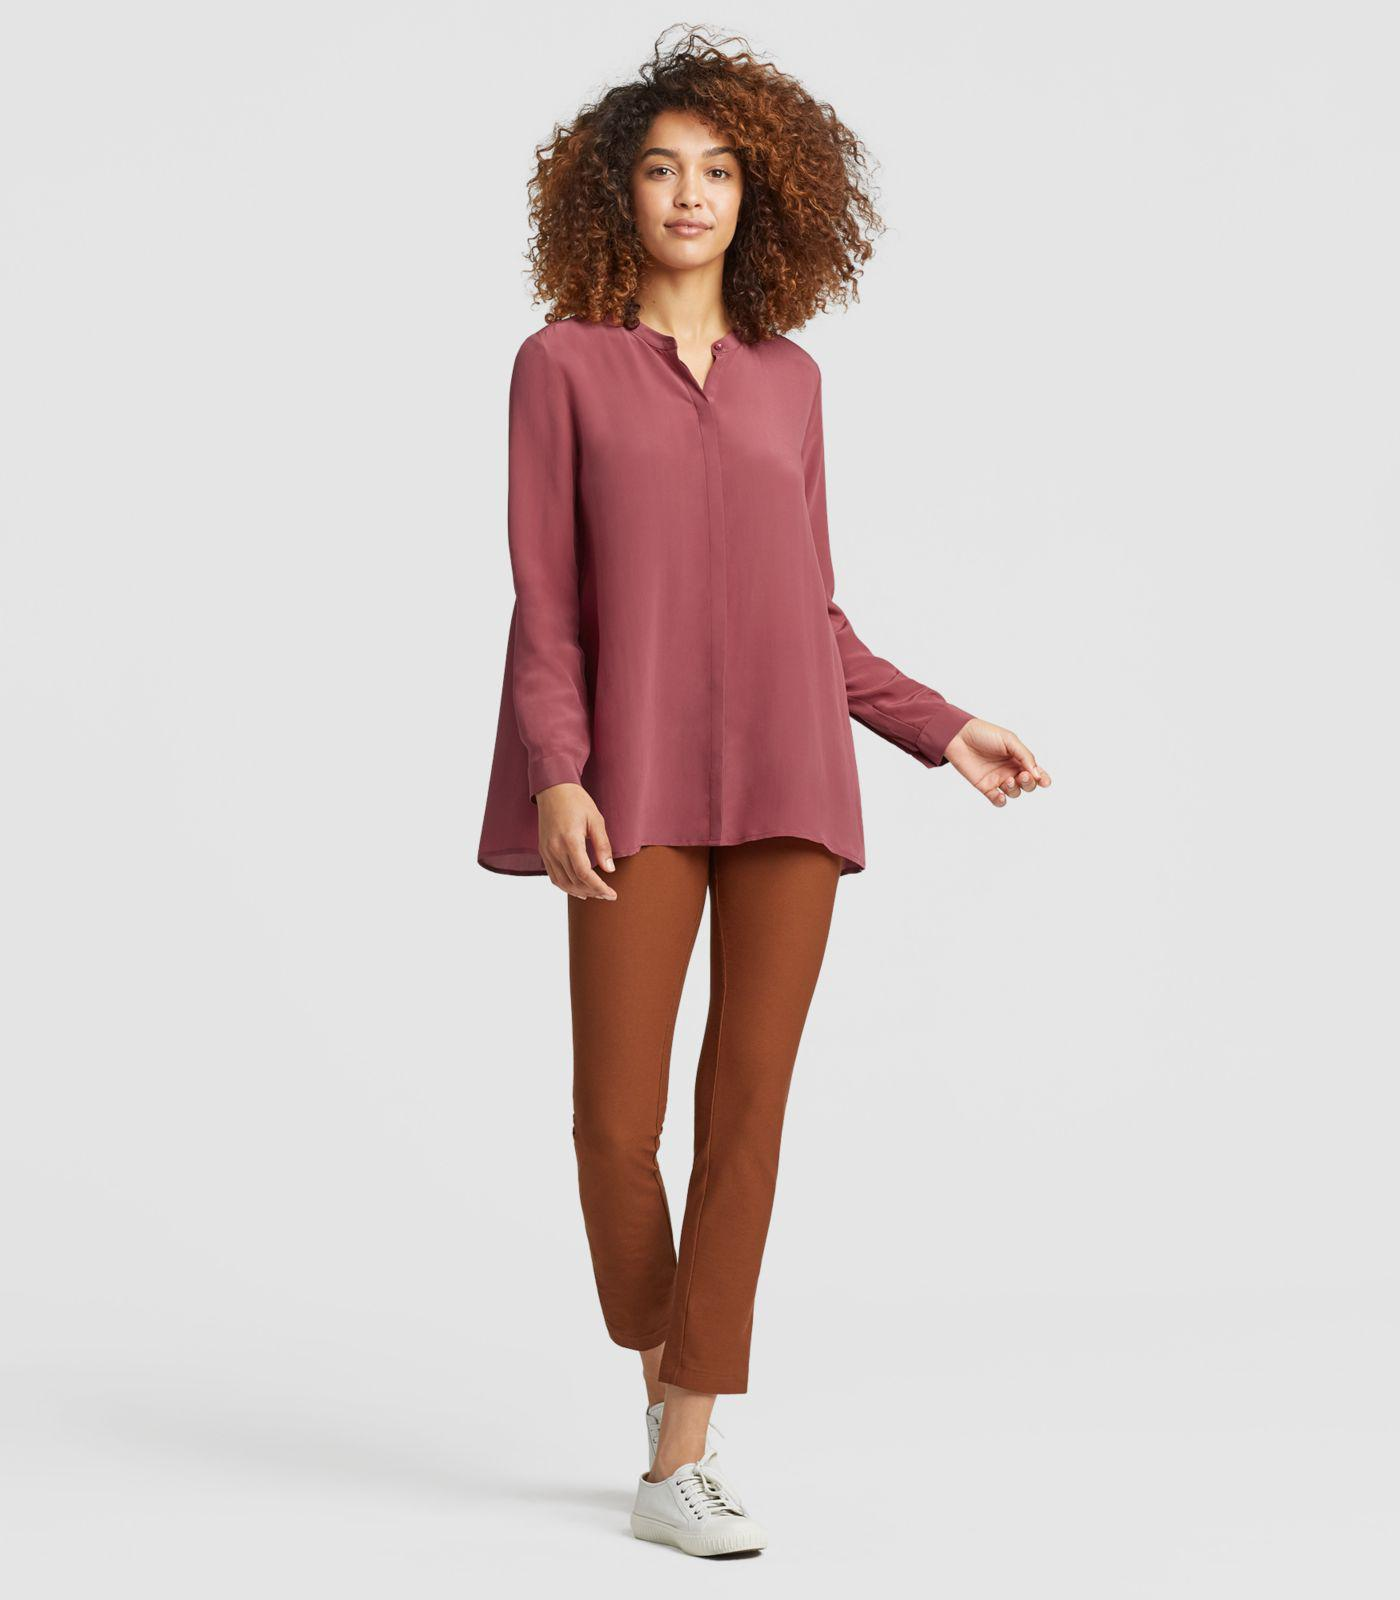 dd90f07821774 Lyst - Eileen Fisher Silk Crepe De Chine A-line Shirt in Red - Save 48%